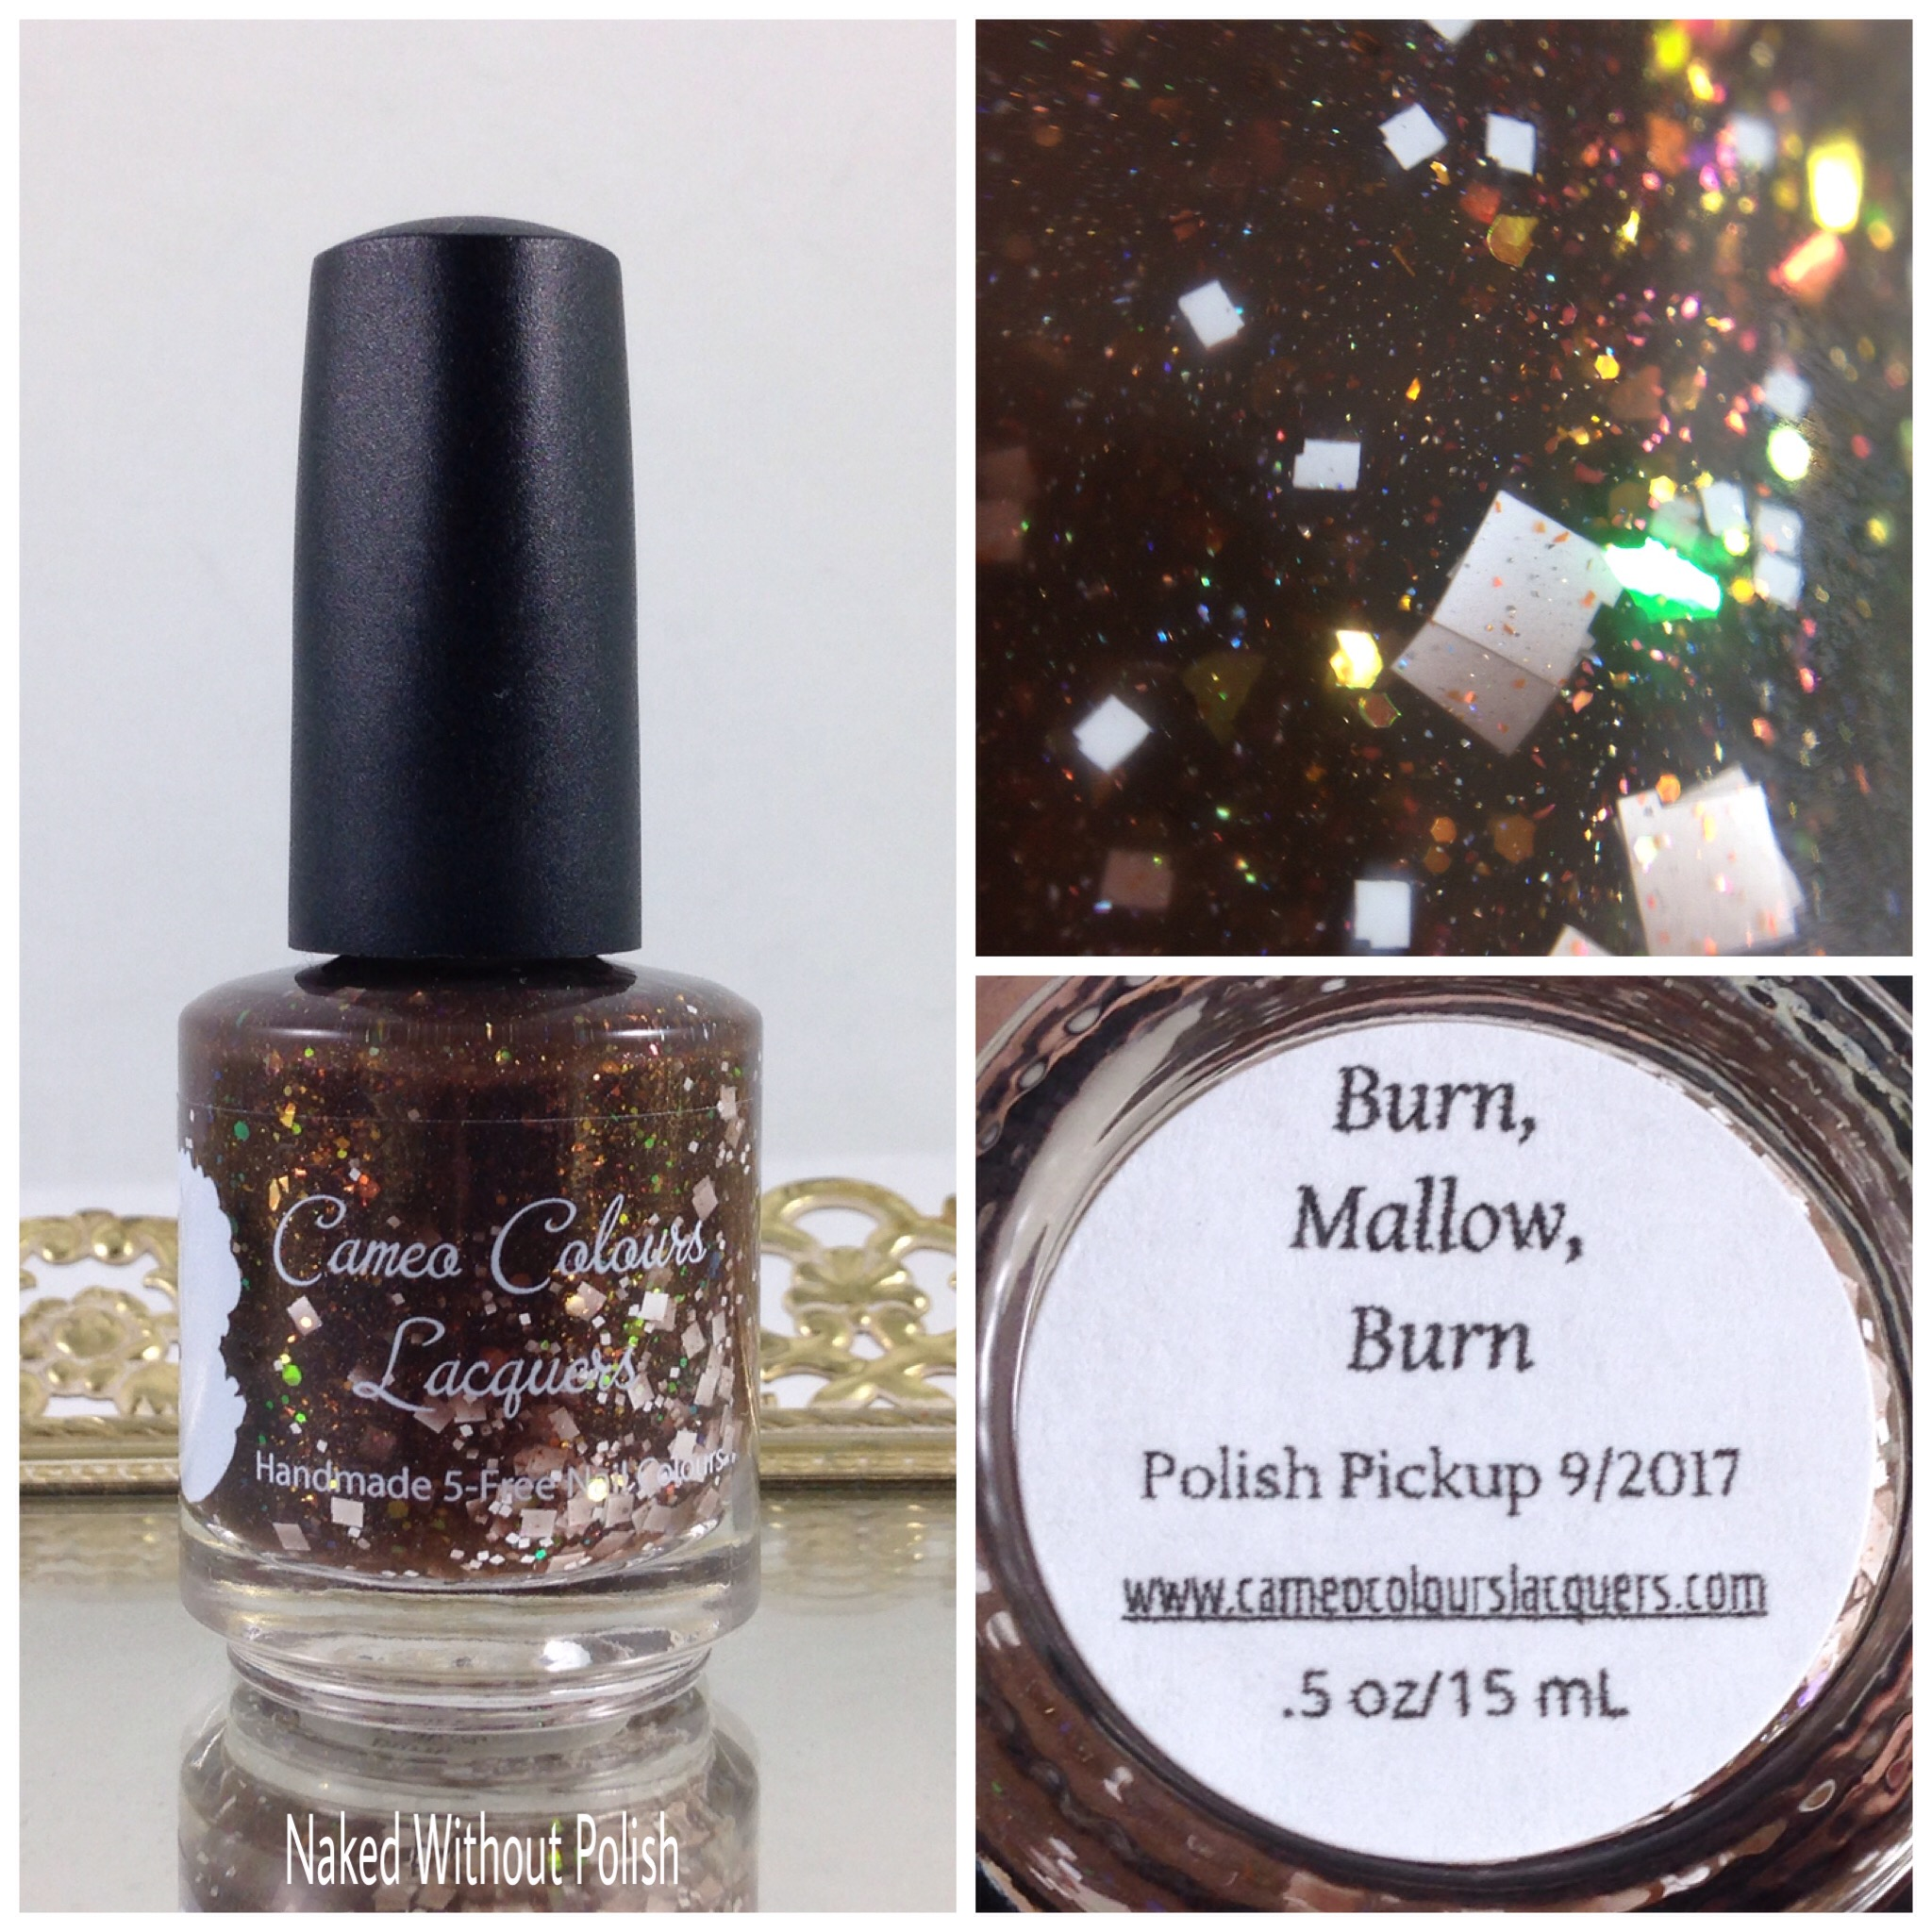 Polish-Pickup-Cameo-Colours-Lacquers-Burn-Mallow-Burn-1